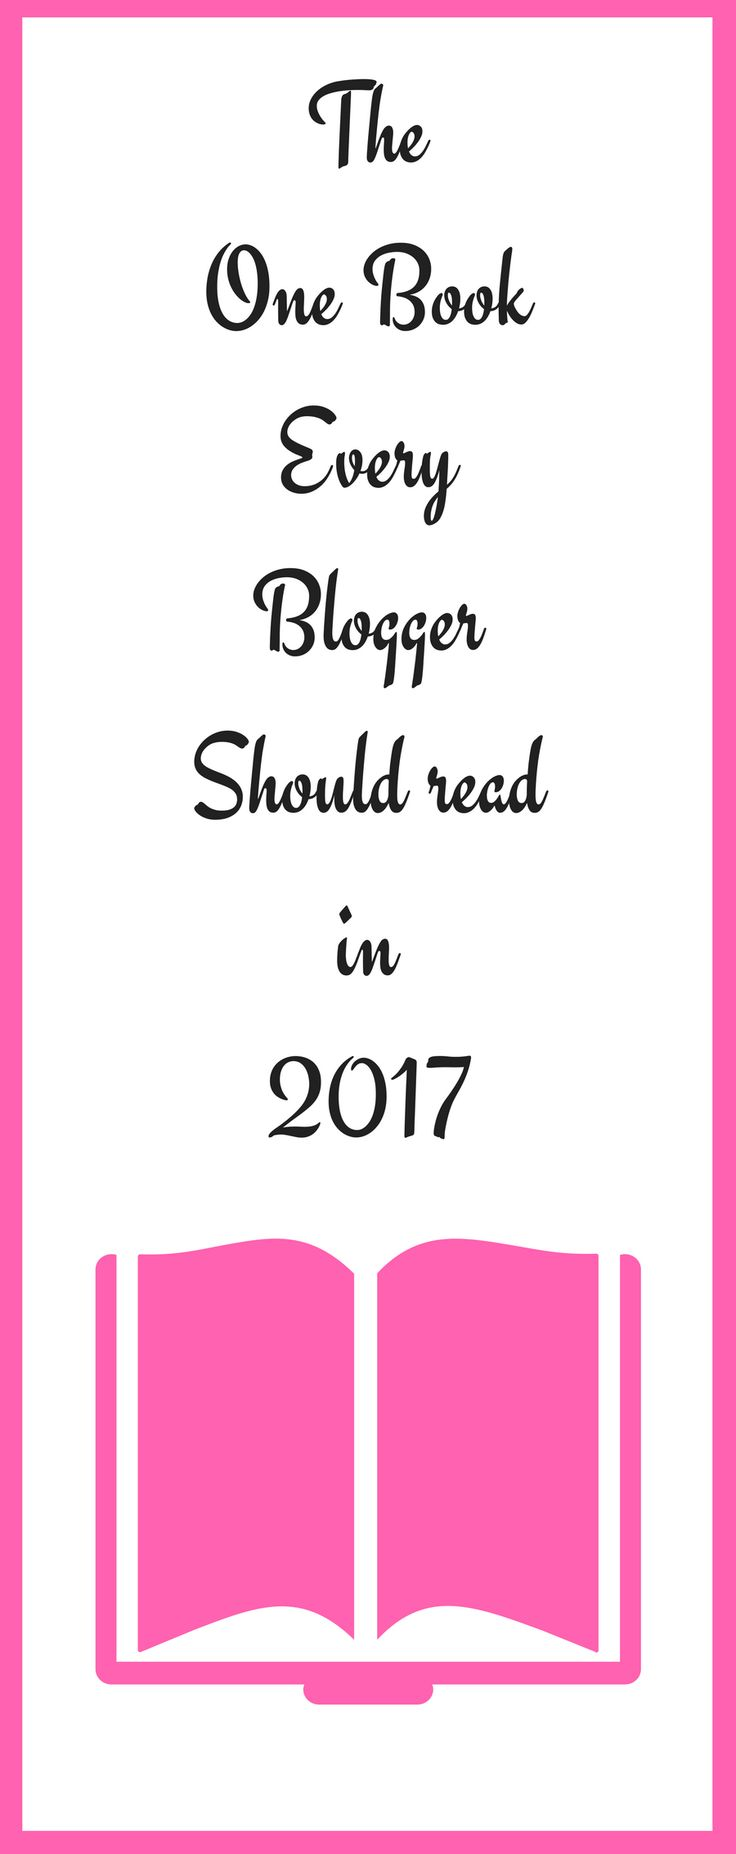 The one book every blogger should read in 2017